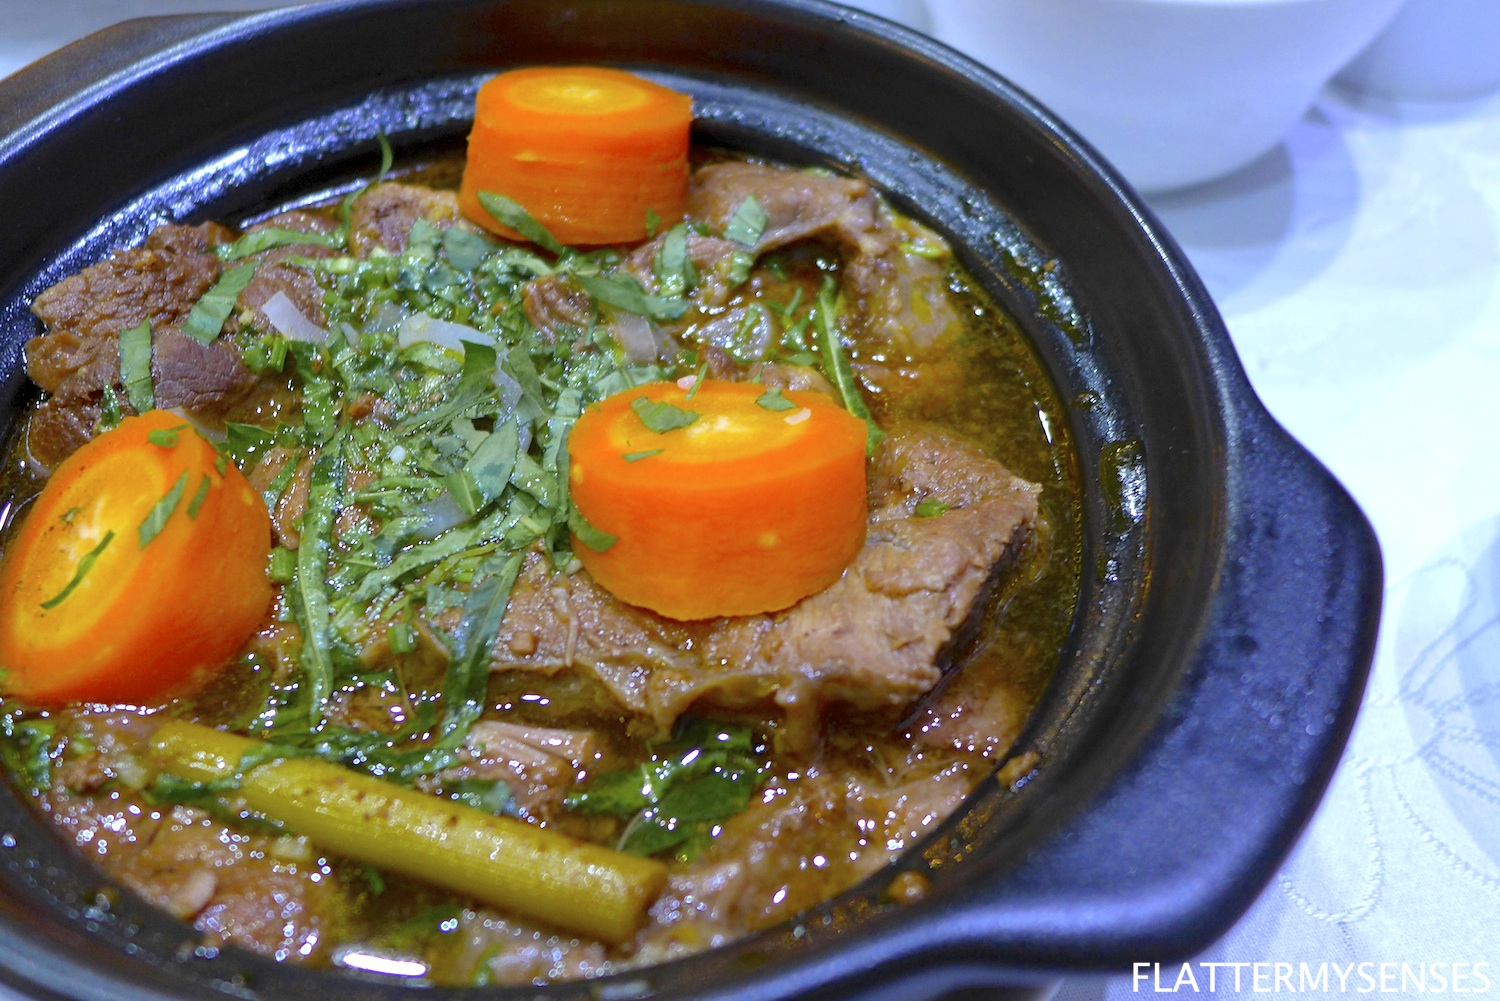 Bo Kho  ( Php 355 ) 12-spice slow-cooked beef stew with fried potatoes, carrots and lemongrass, served with either a side of rice or flat noodles.